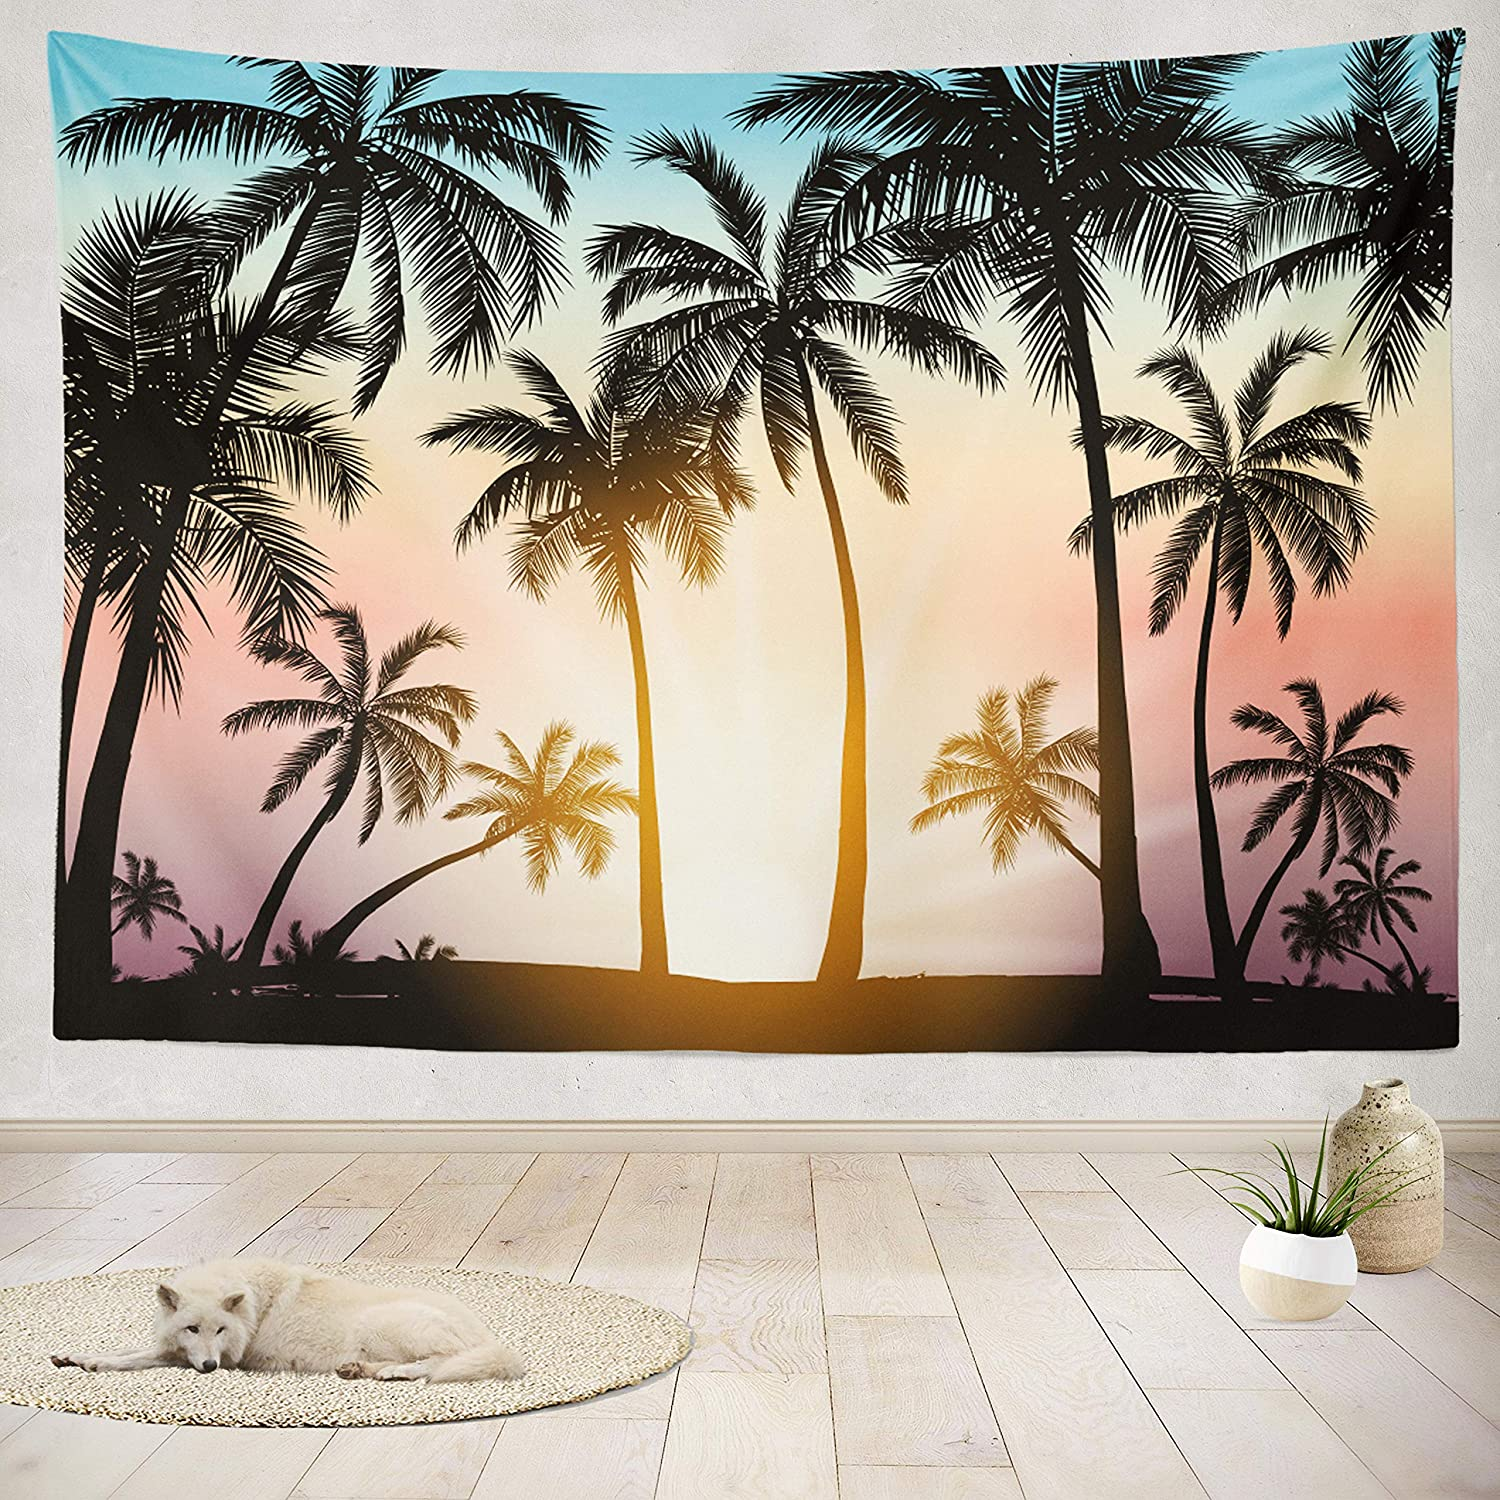 ASOCO New sales Tapestry Wall Handing with Genuine Silhouette Trees Tropical Palm